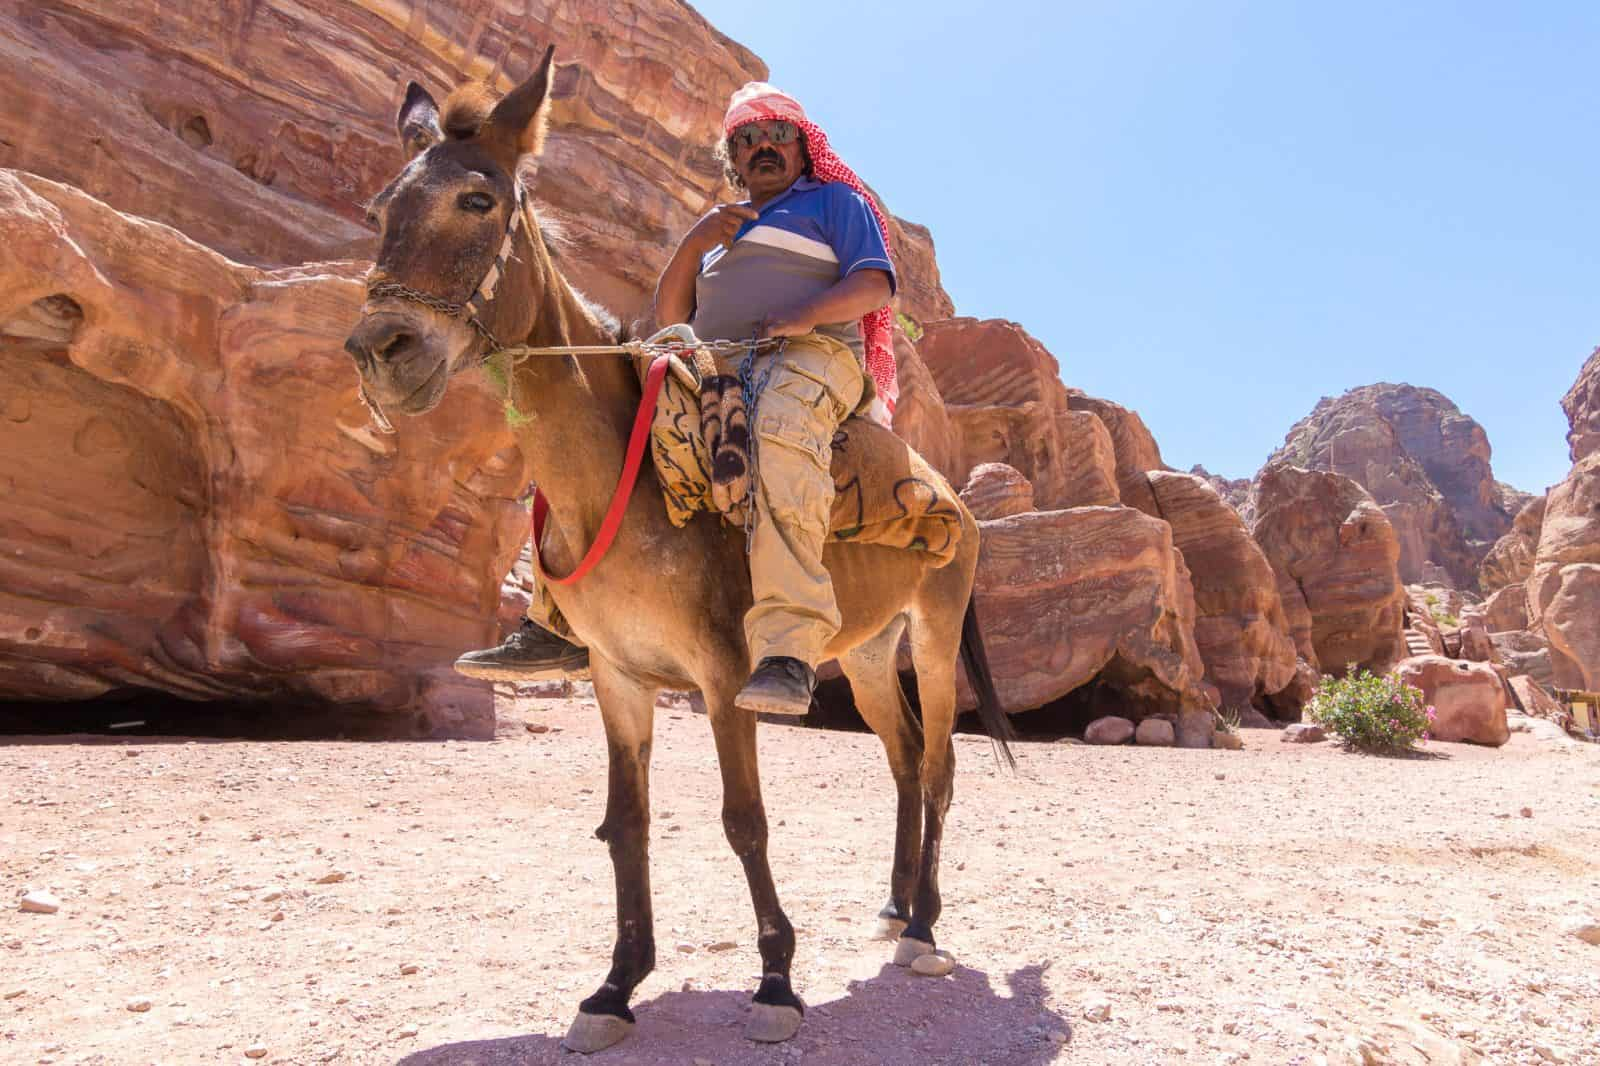 Just a man and his donkey, City of Petra, Jordan